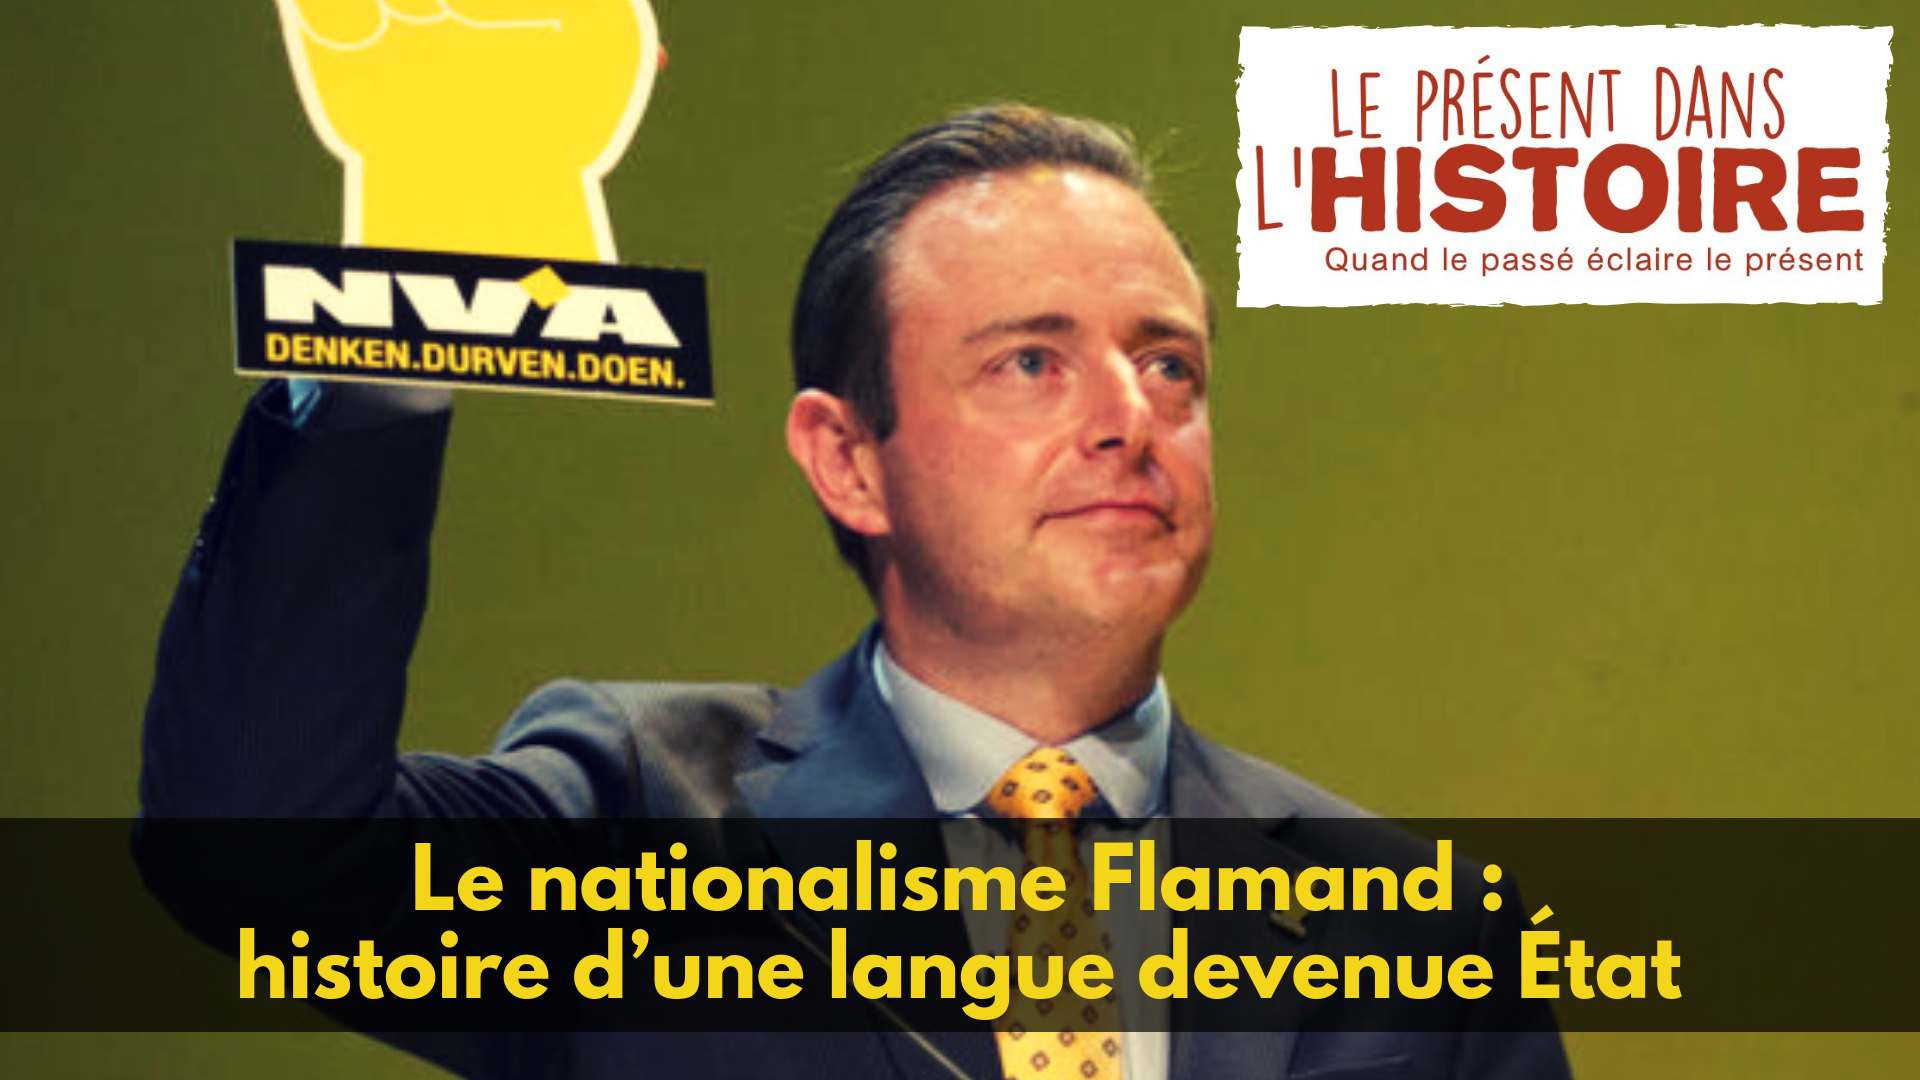 Nationalisme flamand